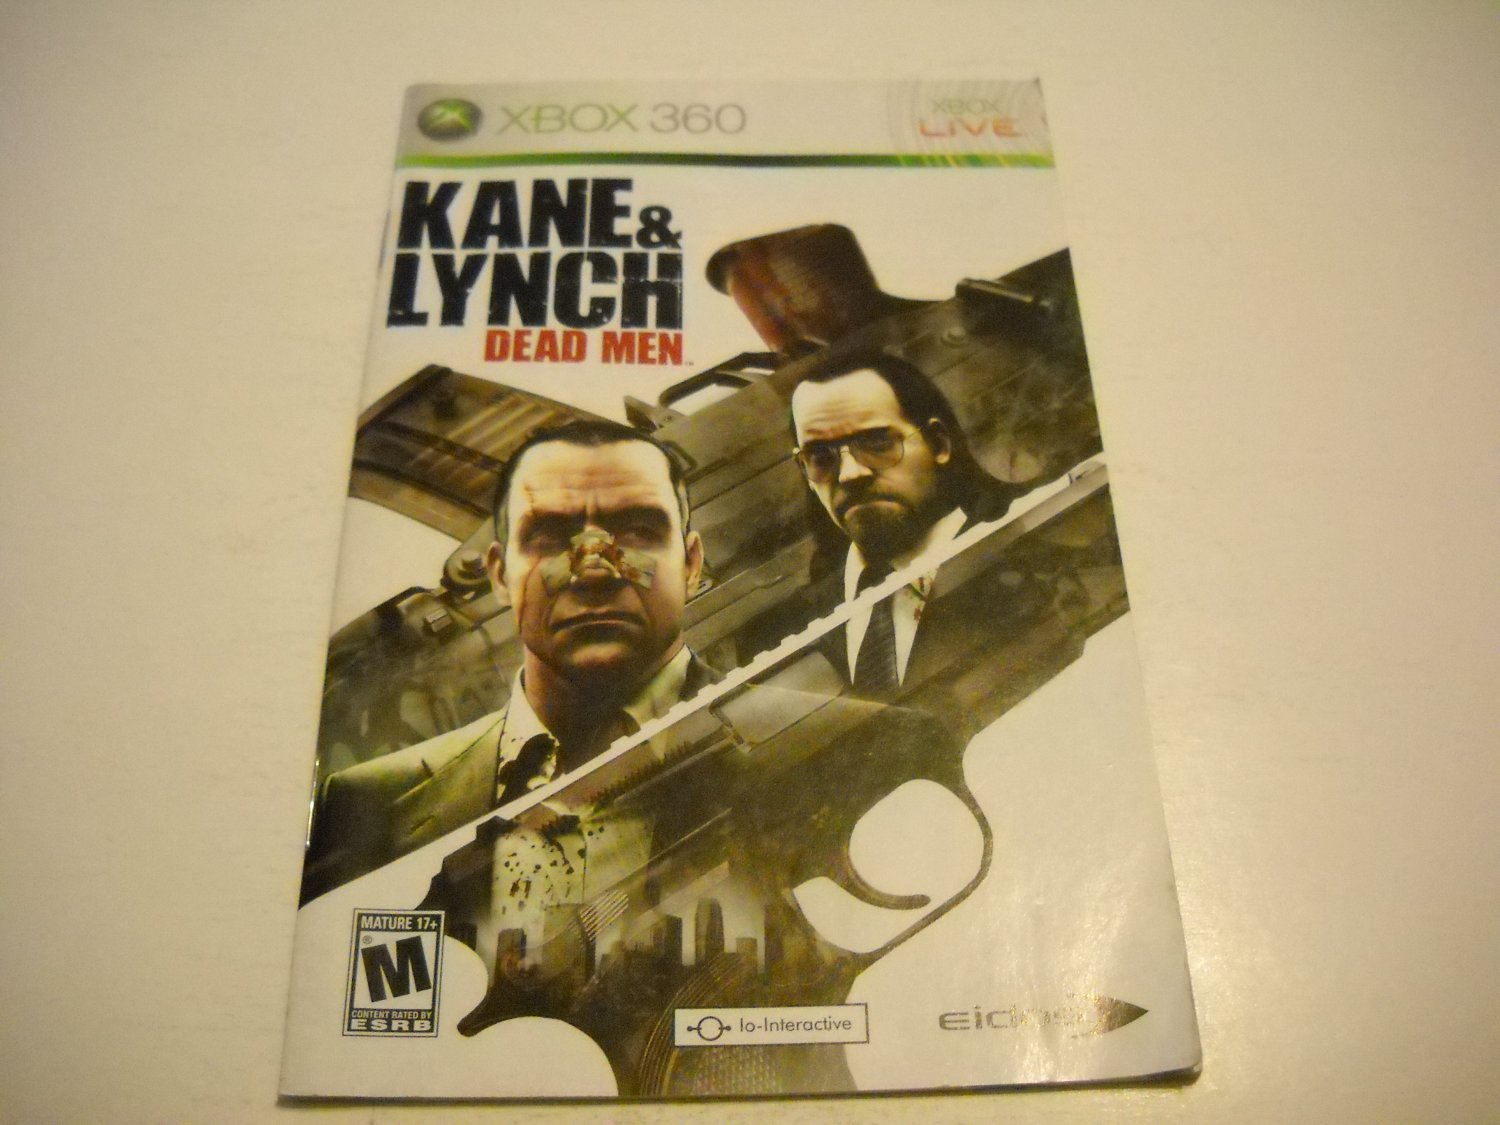 Manual ONLY ~  for Kane and Lynch Dead Men   - Xbox 360 Instruction Booklet